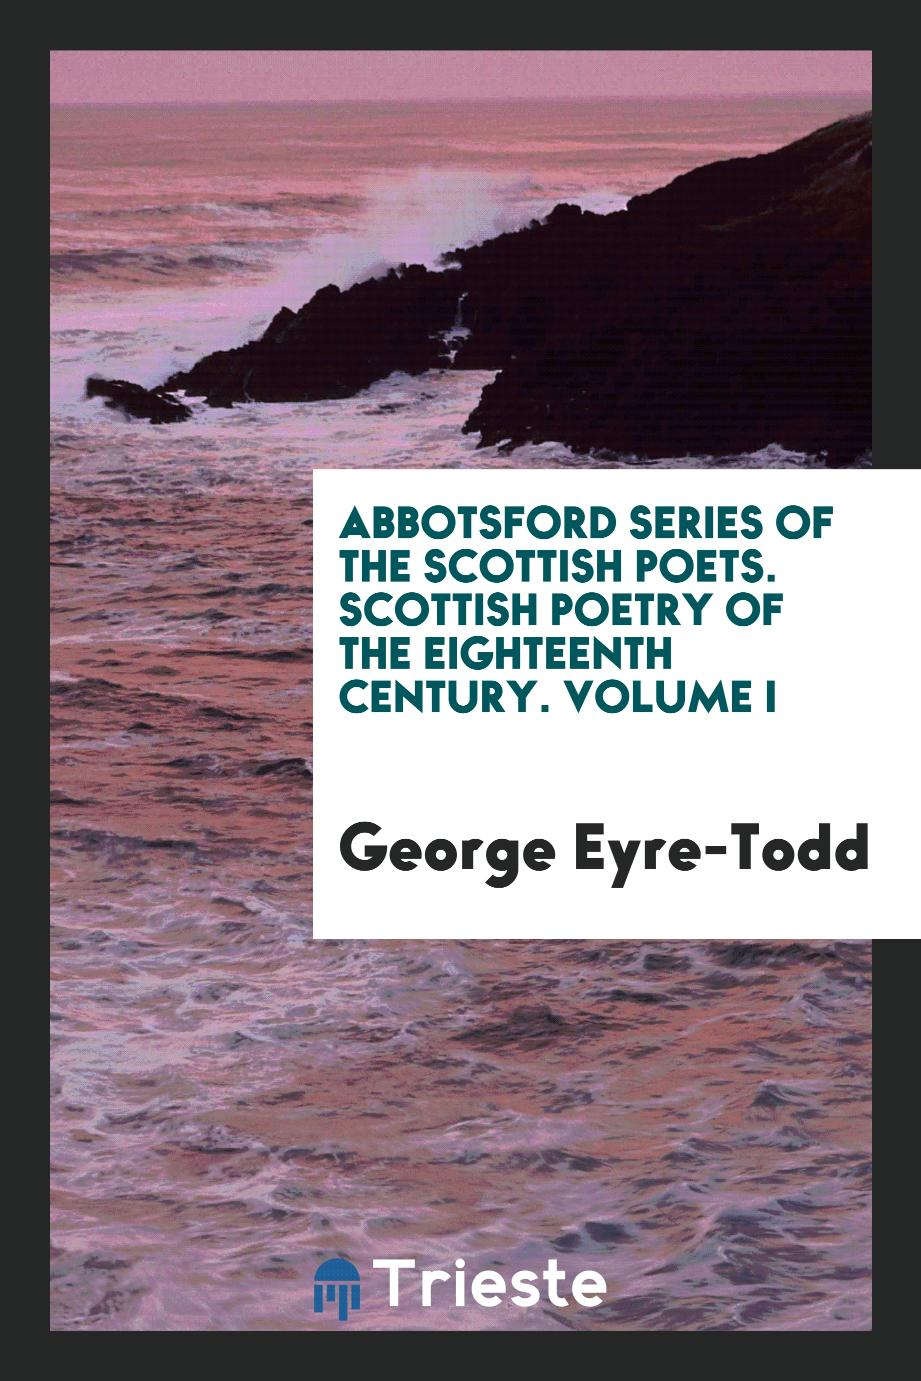 Abbotsford Series of the Scottish Poets. Scottish Poetry of the Eighteenth Century. Volume I